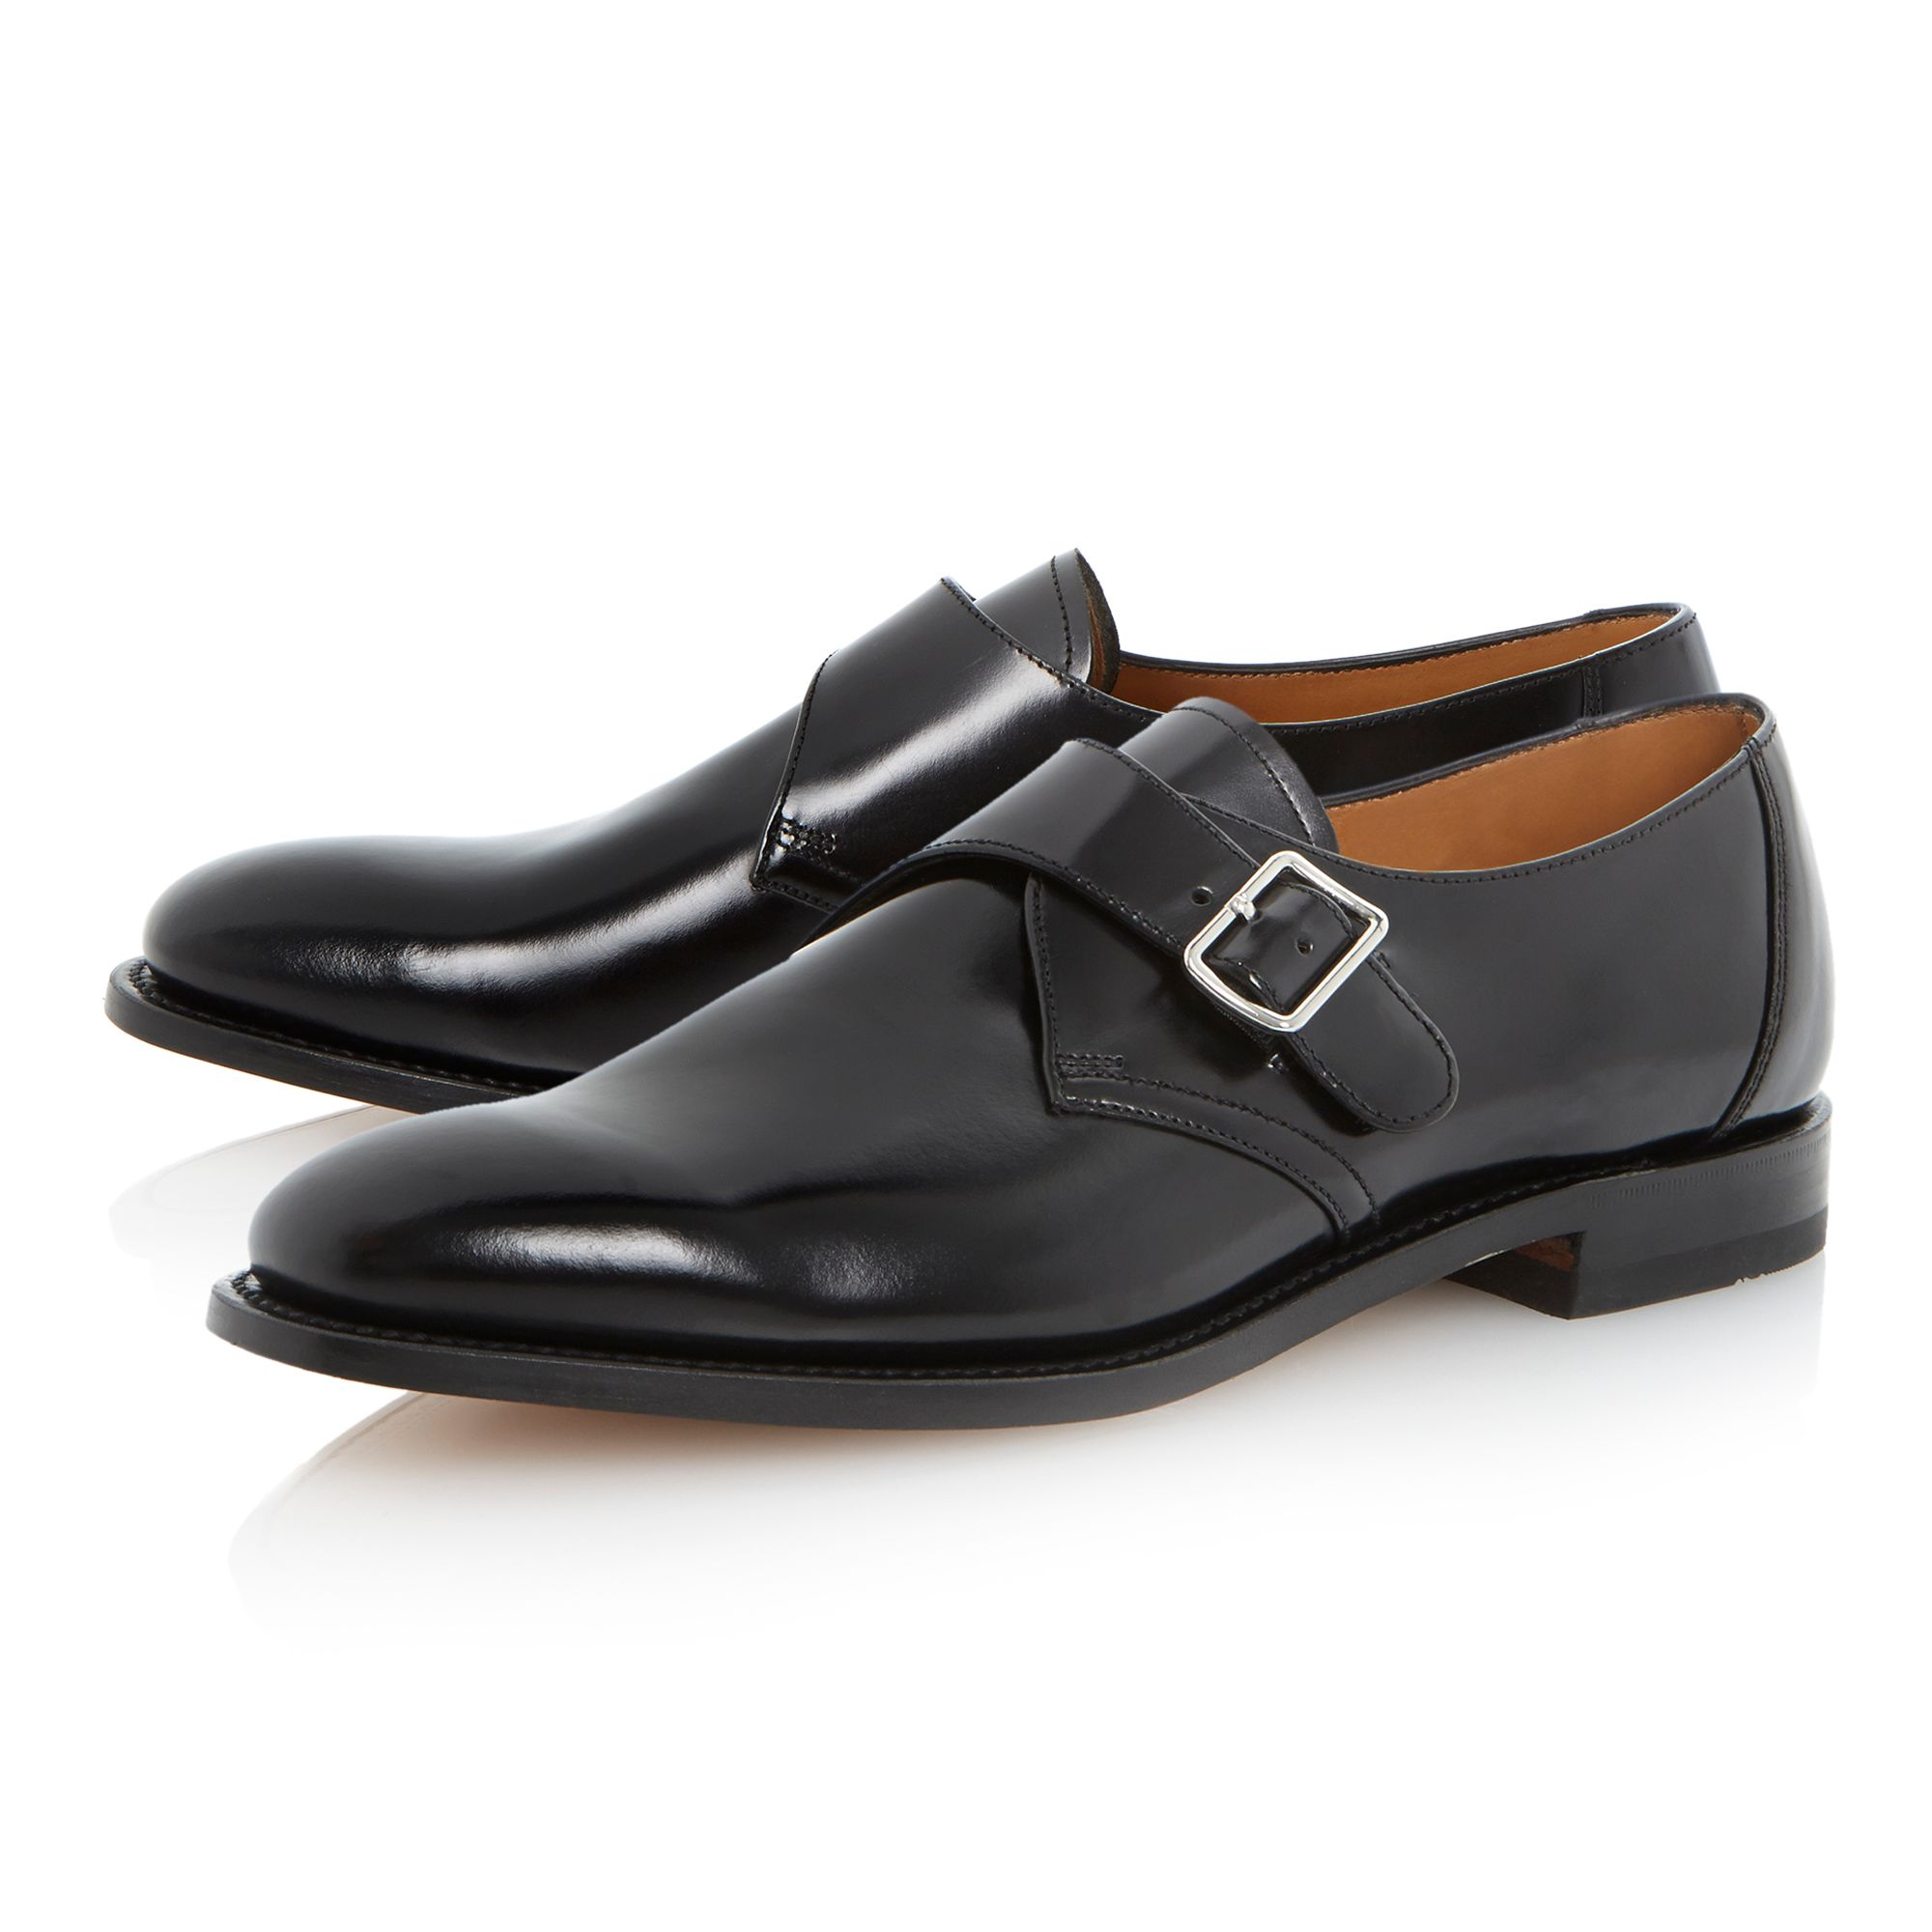 204 buckle trim leather monk shoe